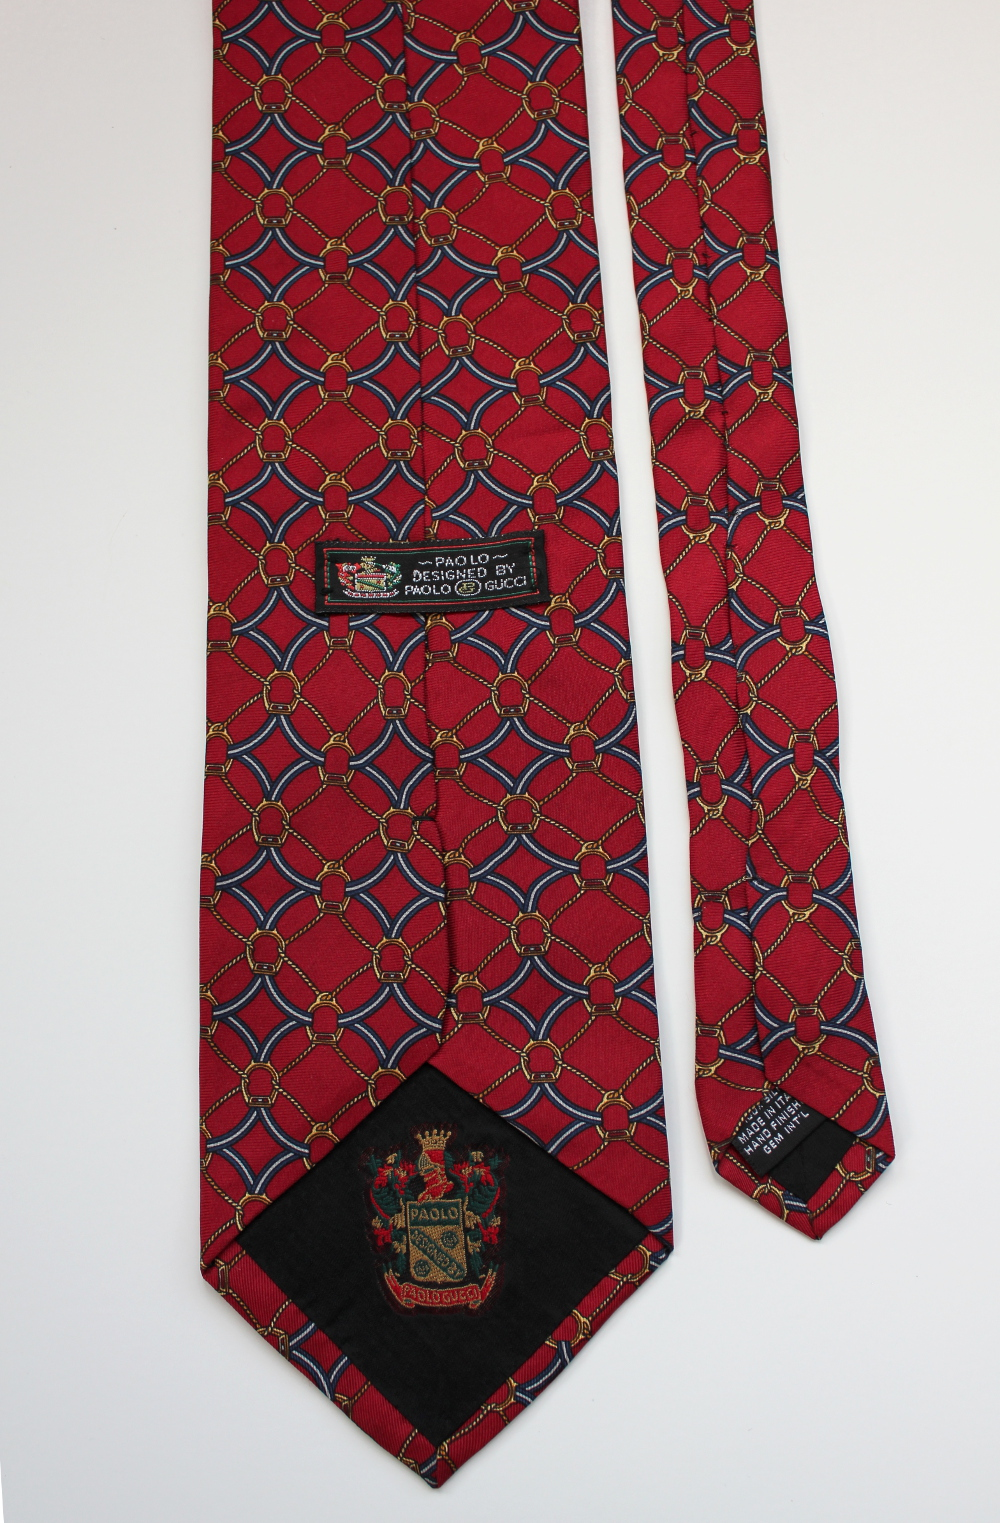 Sold Paolo By Paolo Gucci Vintage Tie Chuck Dodson Fashion